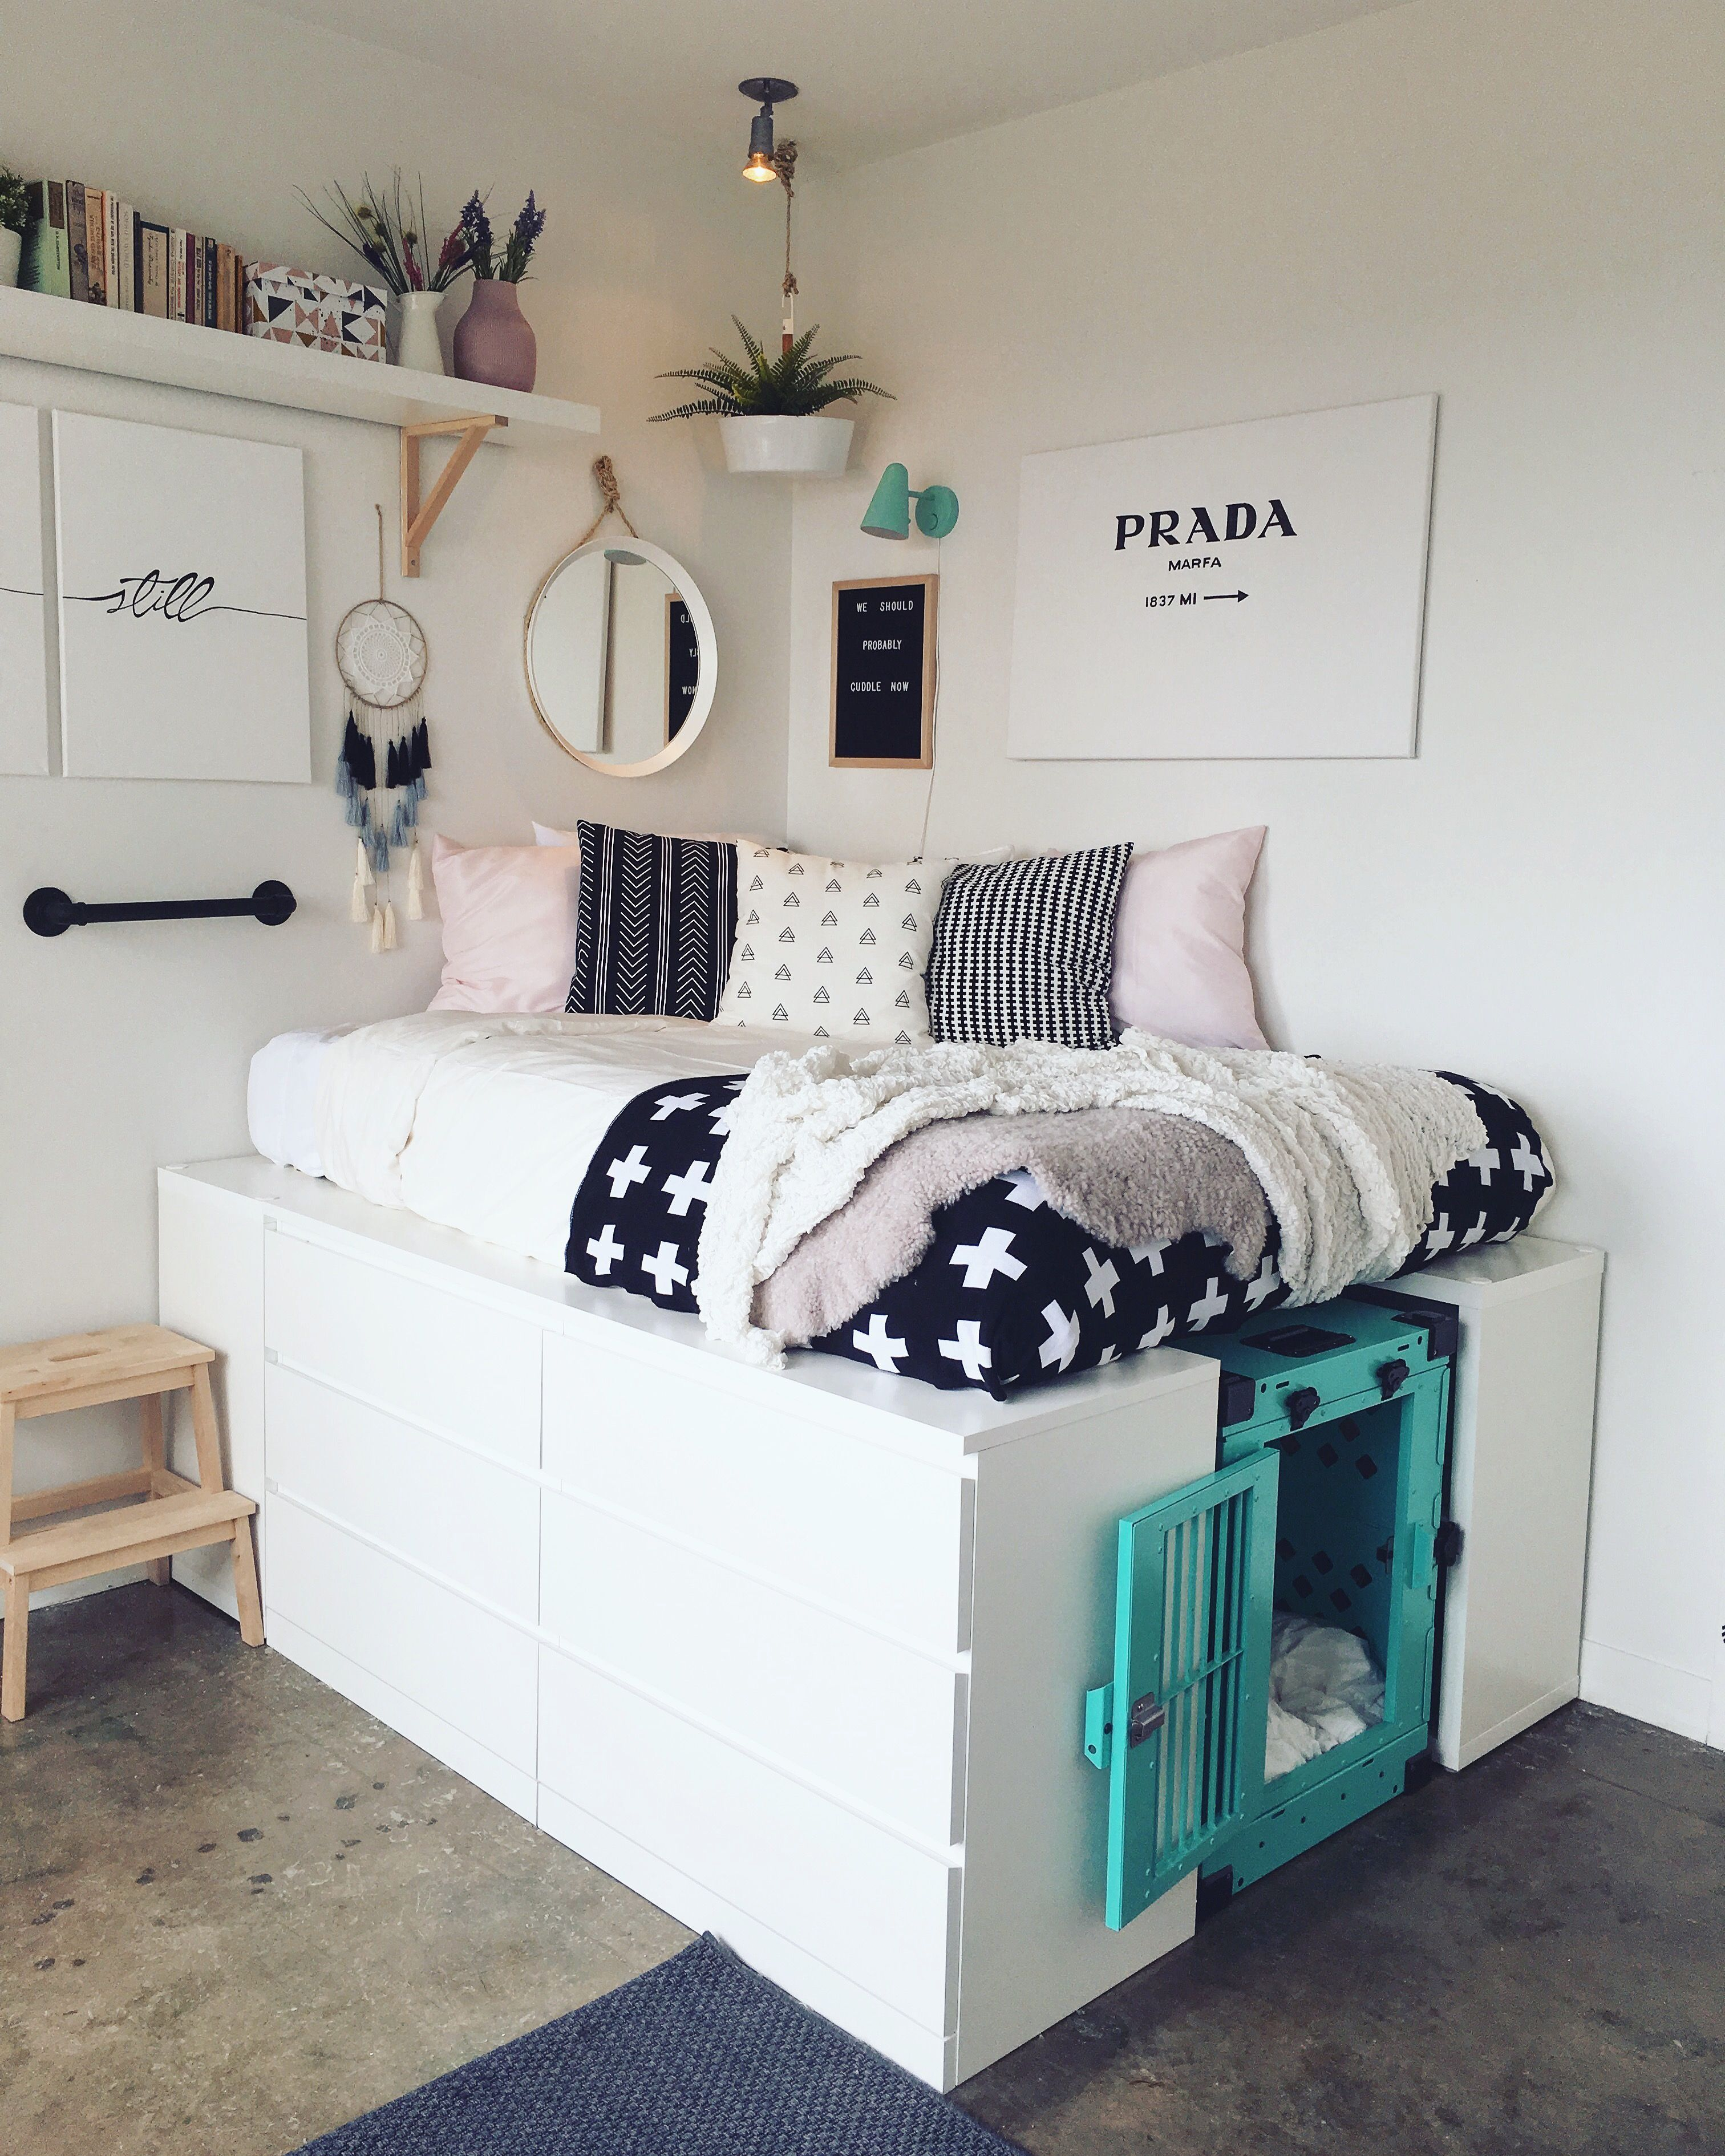 This Dallas Studio Has a Smart IKEA Hack Dog Lovers Will Appreciate is part of Smart Dog Ikea Hack In A Dallas Condo Apartment Therapy - or IKEAhacked a lot of her home decor (like the kitchen island, bed, couch, bookshelves   )